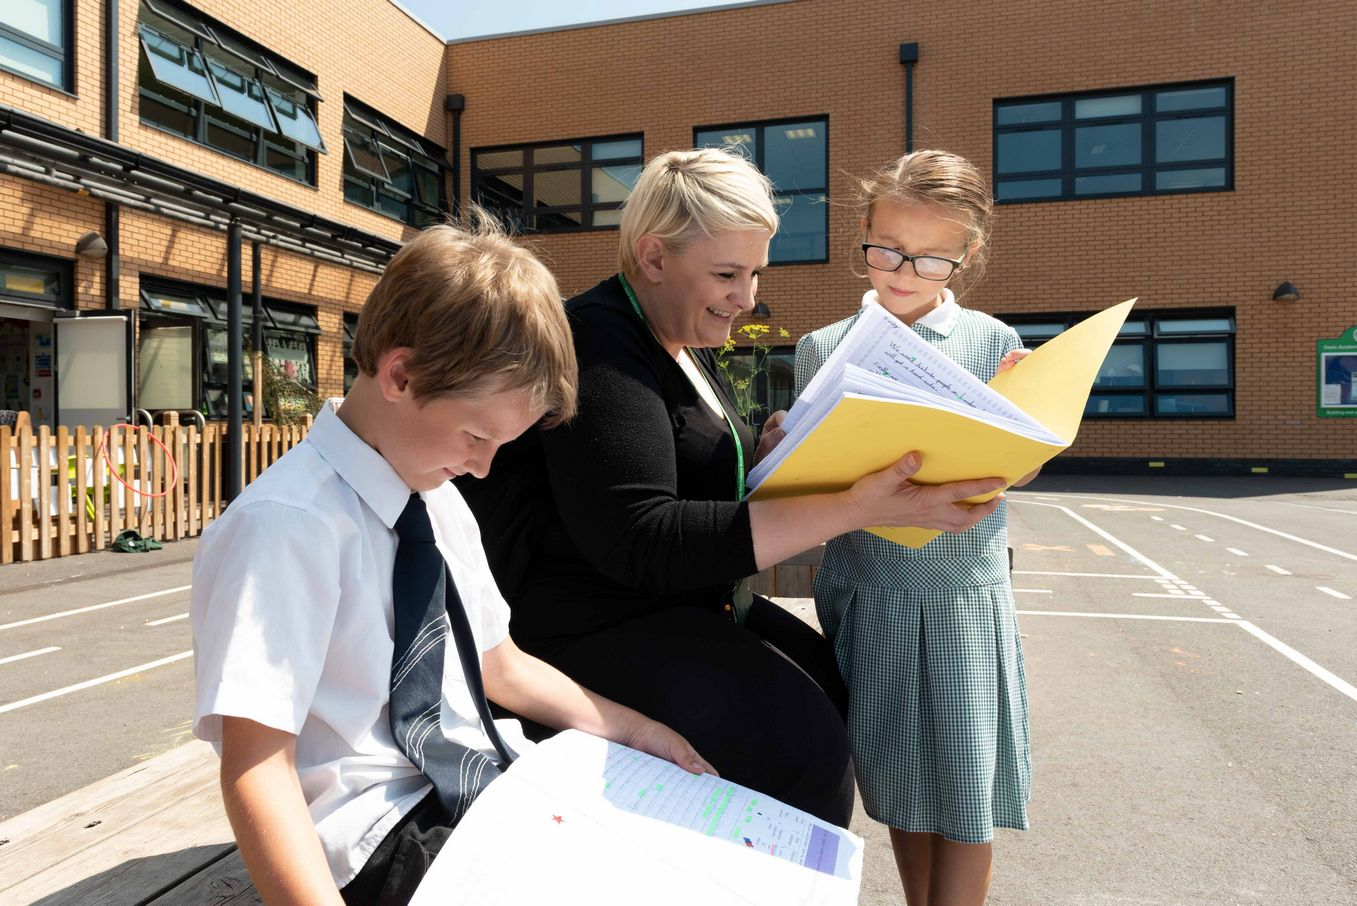 Why Work with Us - Oasis Academy Marksbury Road